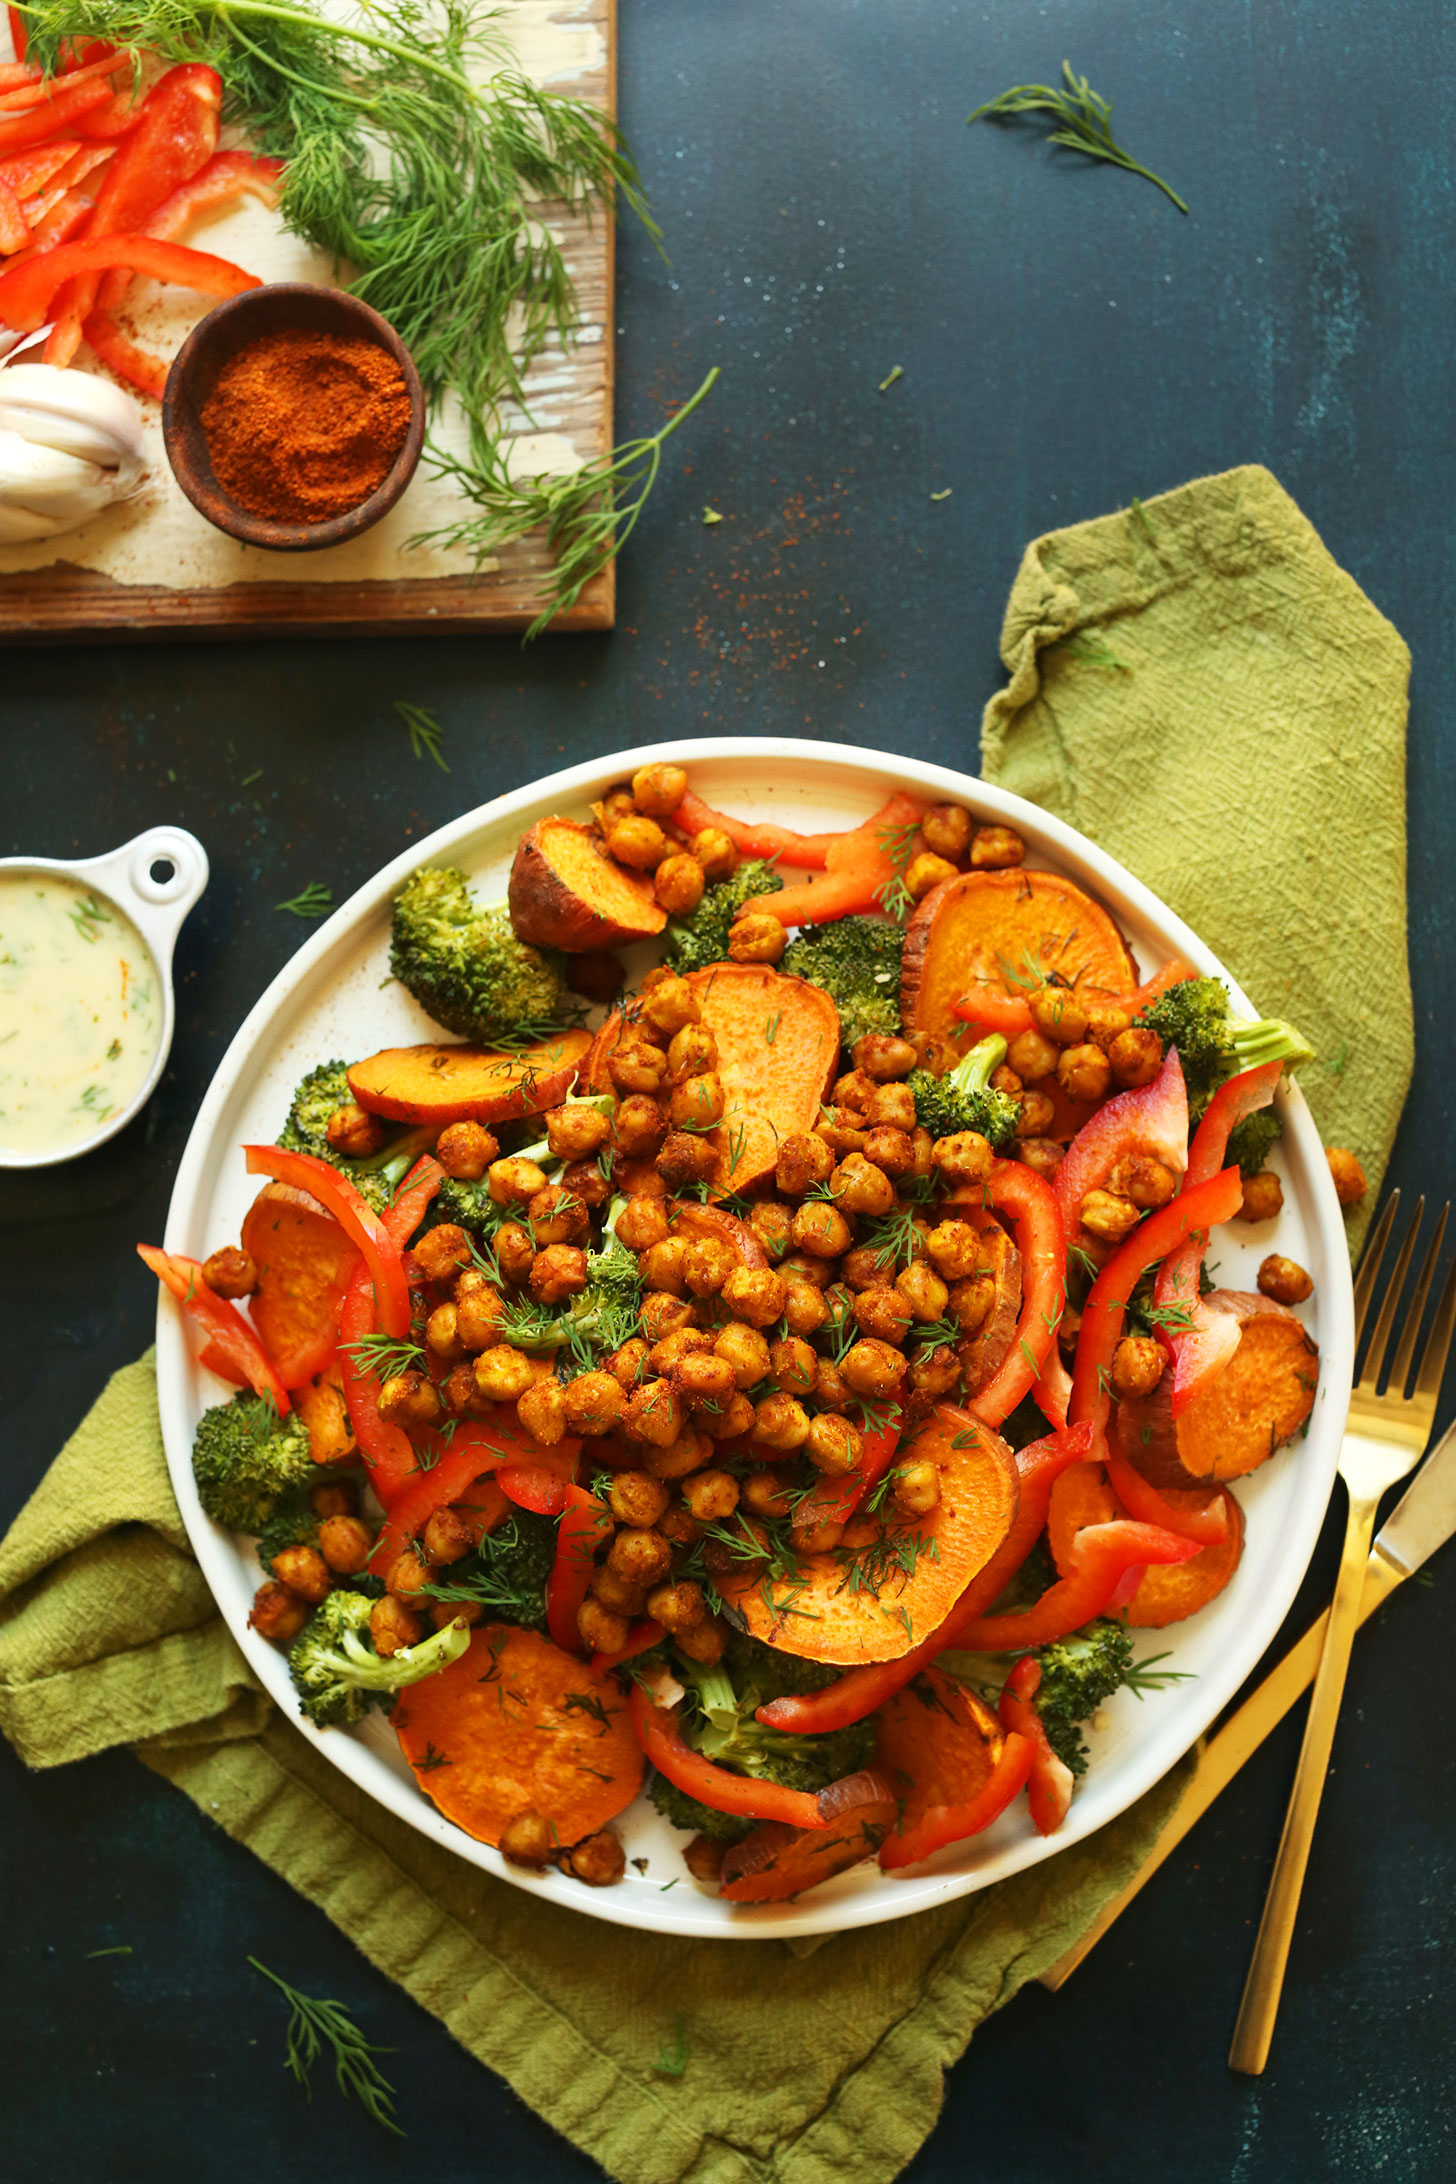 A big serving of our Savory Broccoli Sweet Potato Chickpea Salad for a gluten-free plant-based meal